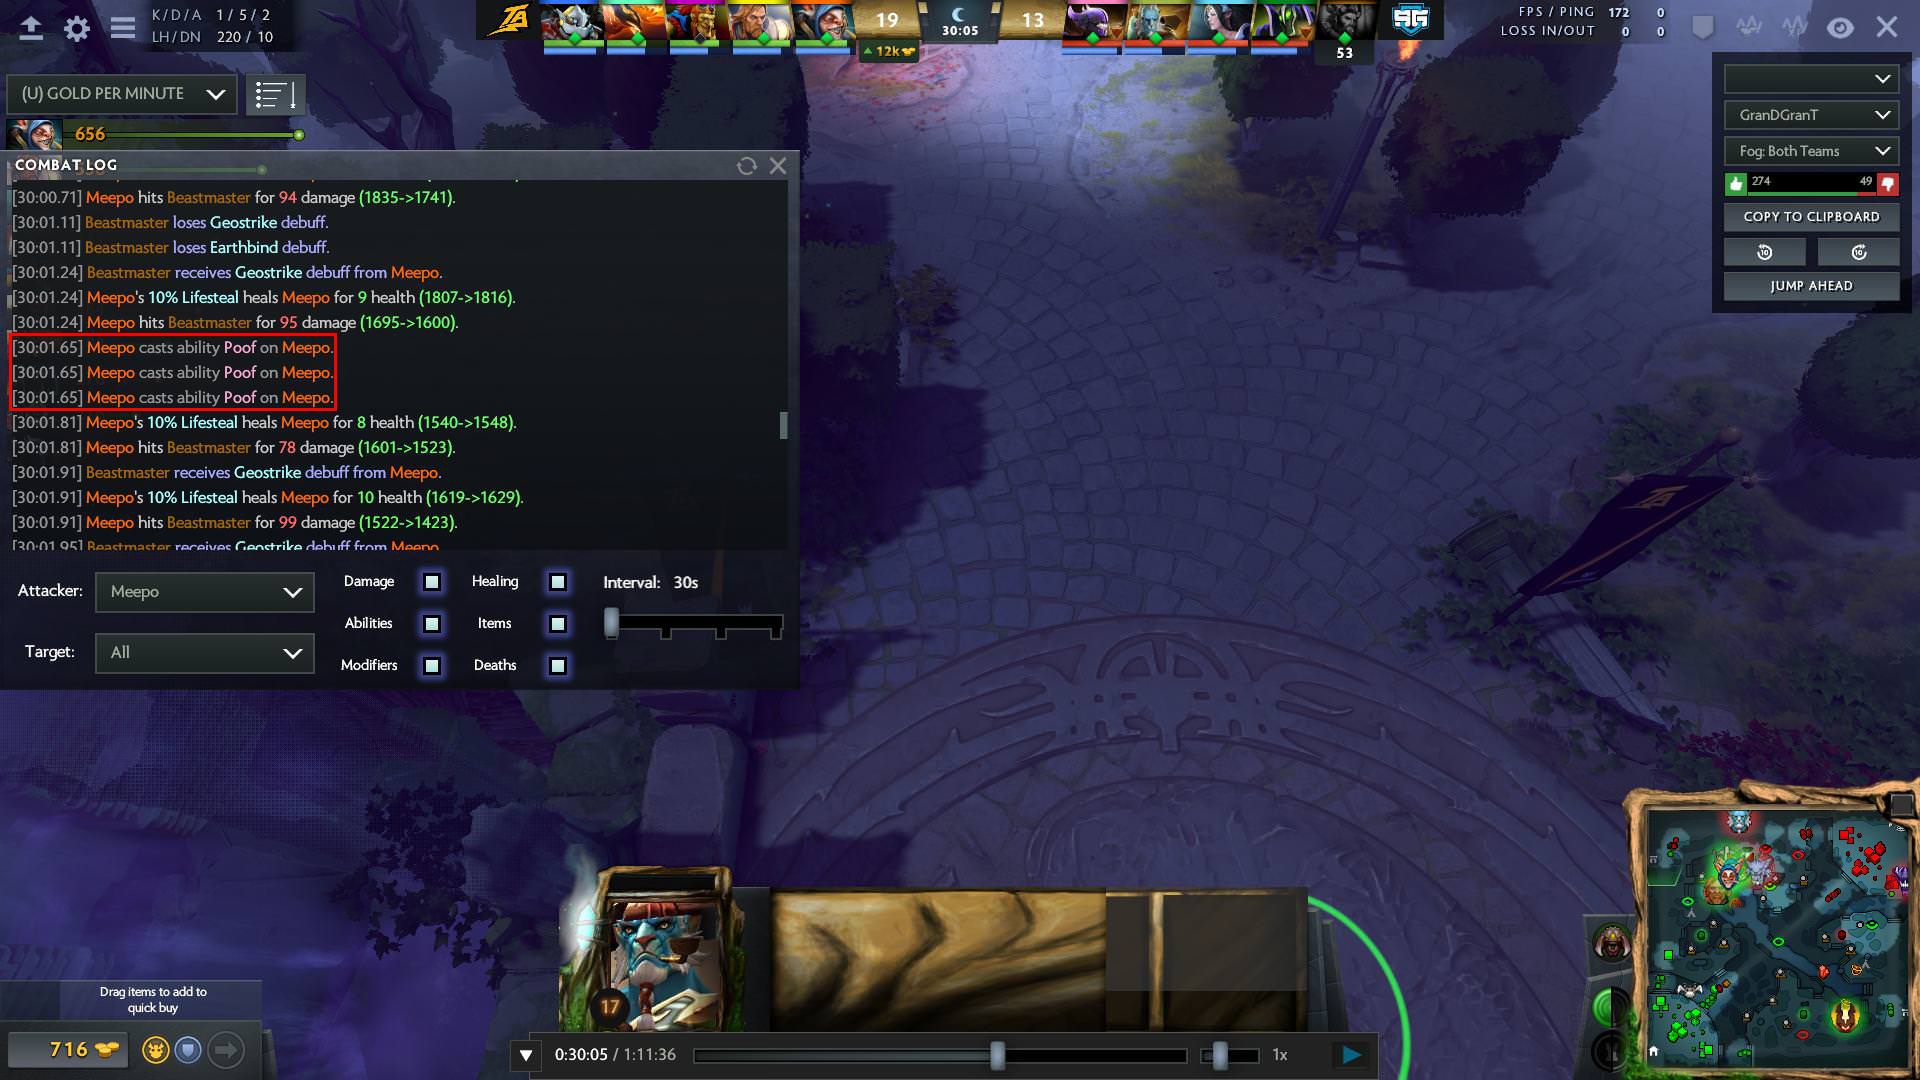 South American player accused of using illegal macro in TI8